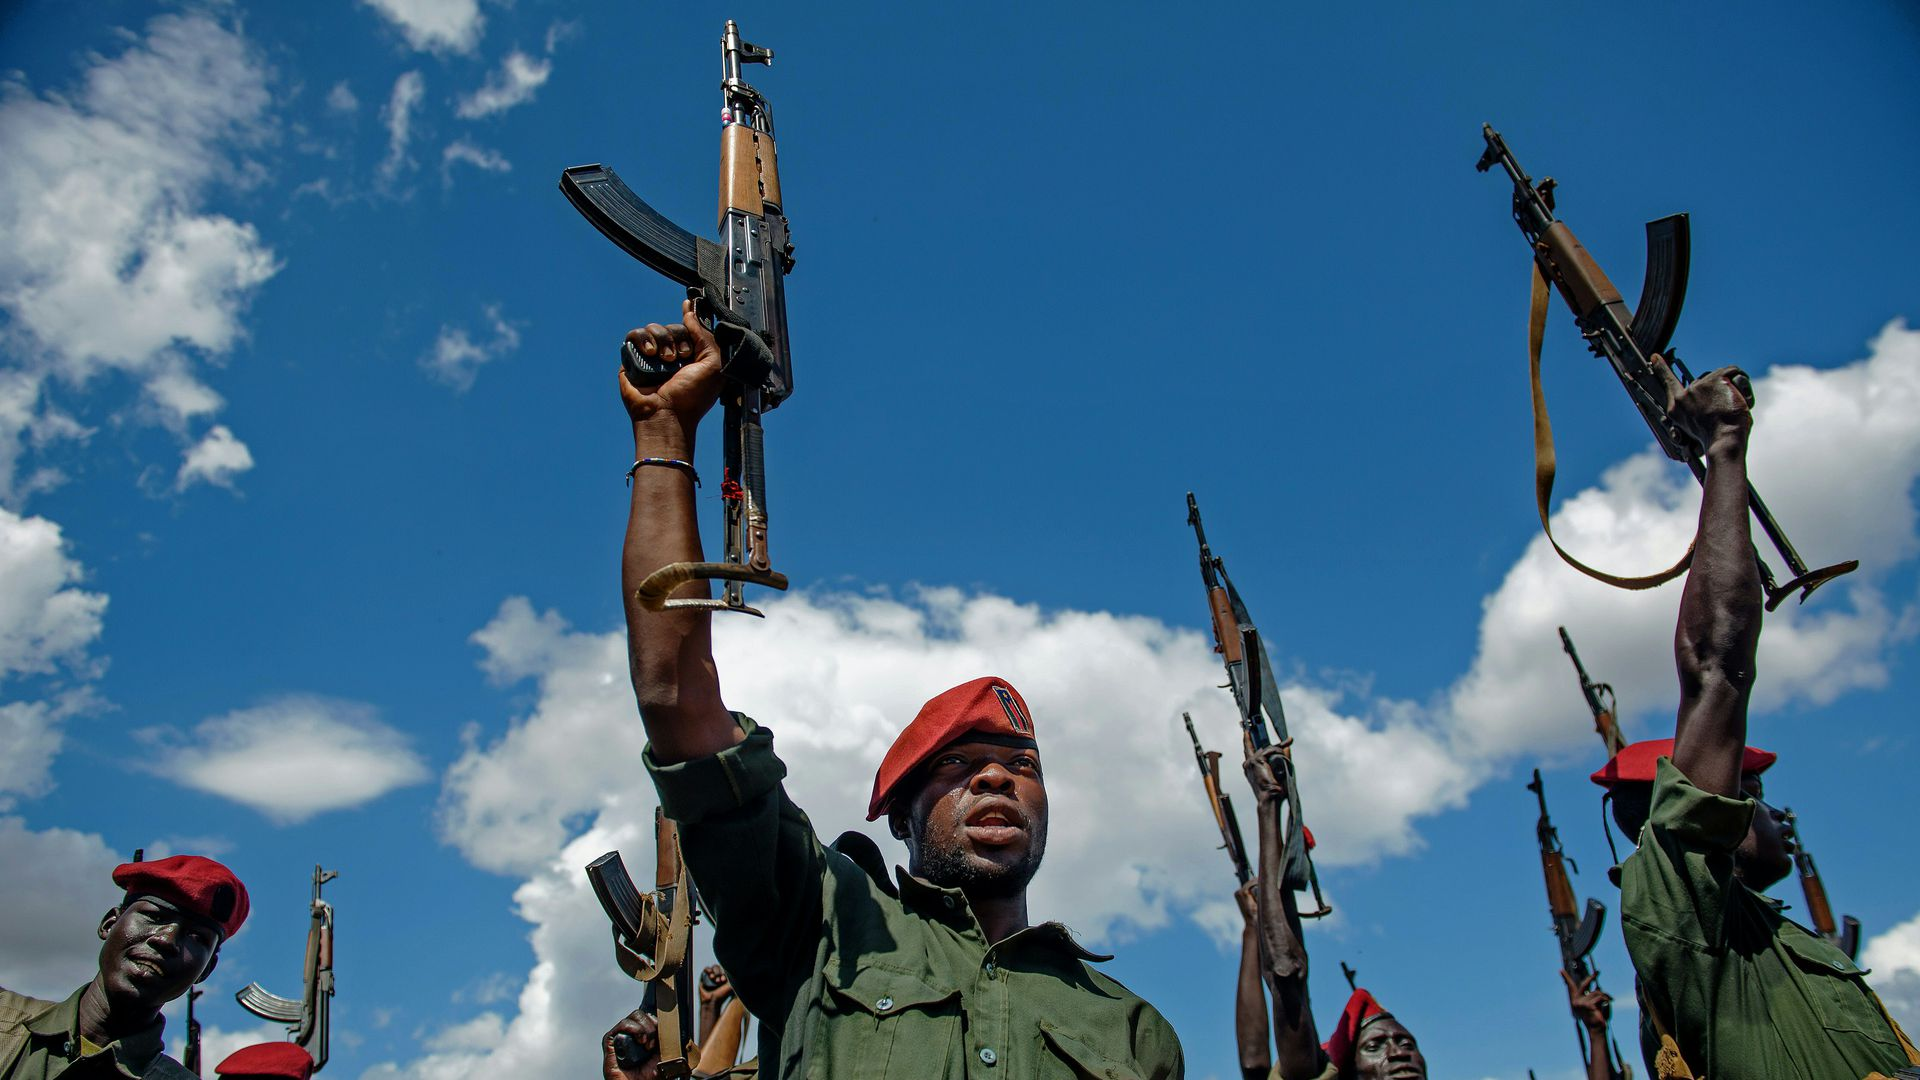 Sudan People's Liberation Army (SPLA) soldiers raise their rifles.